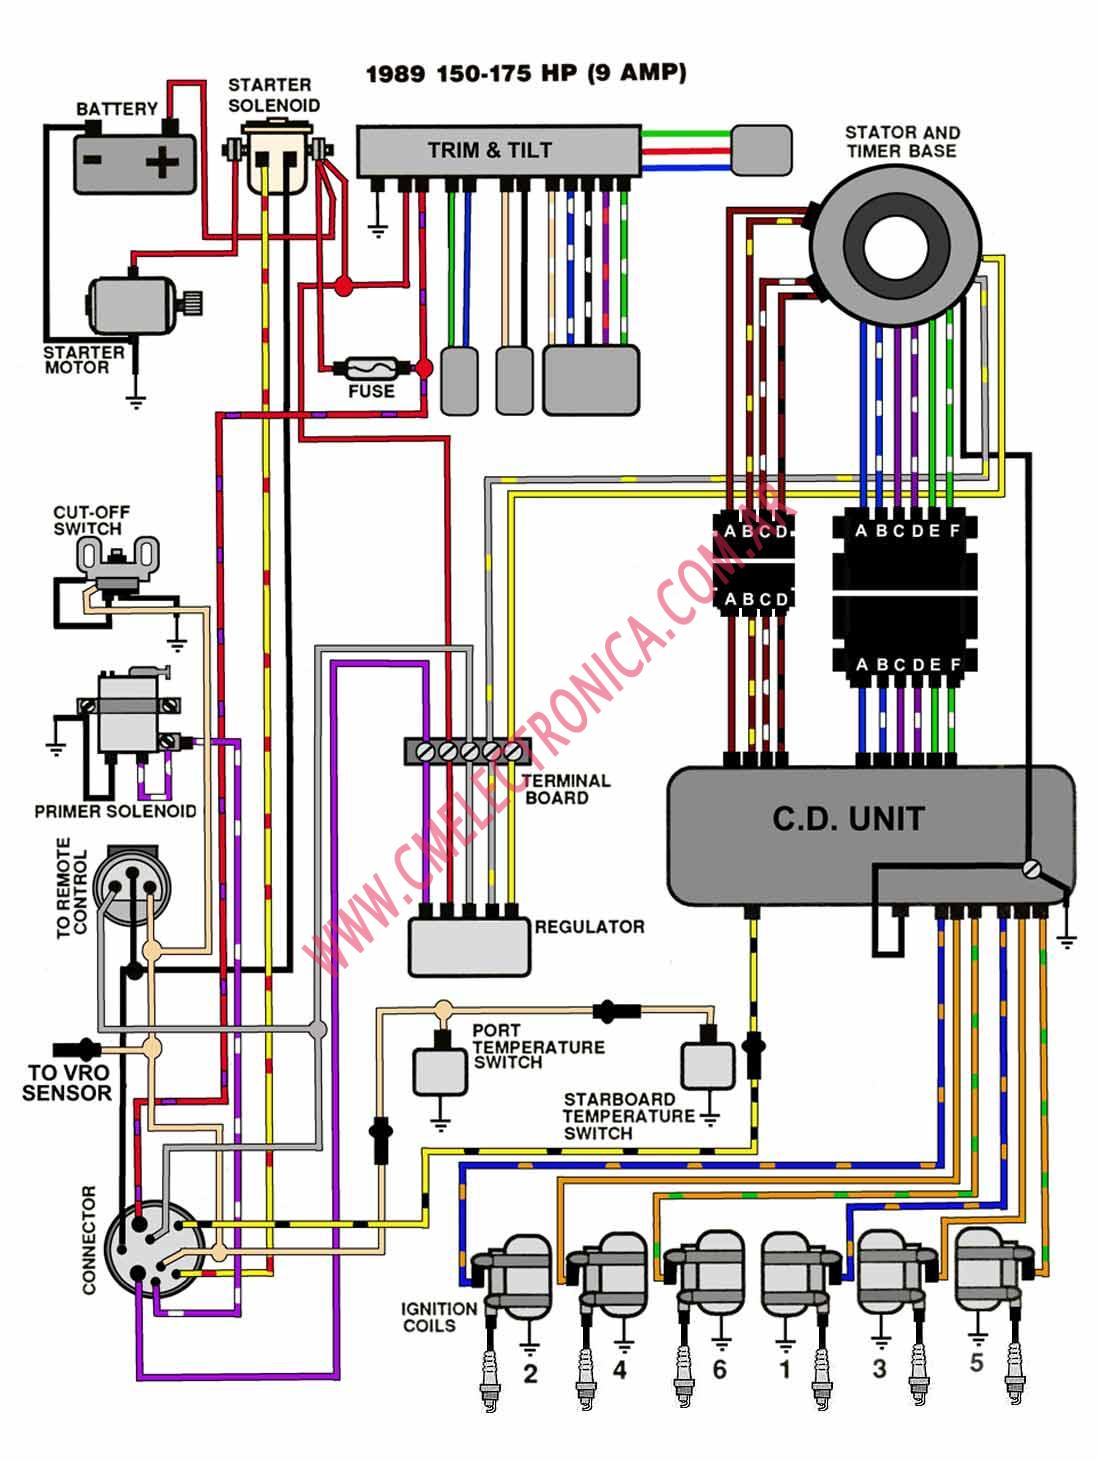 evinrude_johnson 1989_89_150_175_9 a mercury outboard wiring diagrams mastertech marin readingrat net mercury 9.9 4 stroke wiring diagram at panicattacktreatment.co